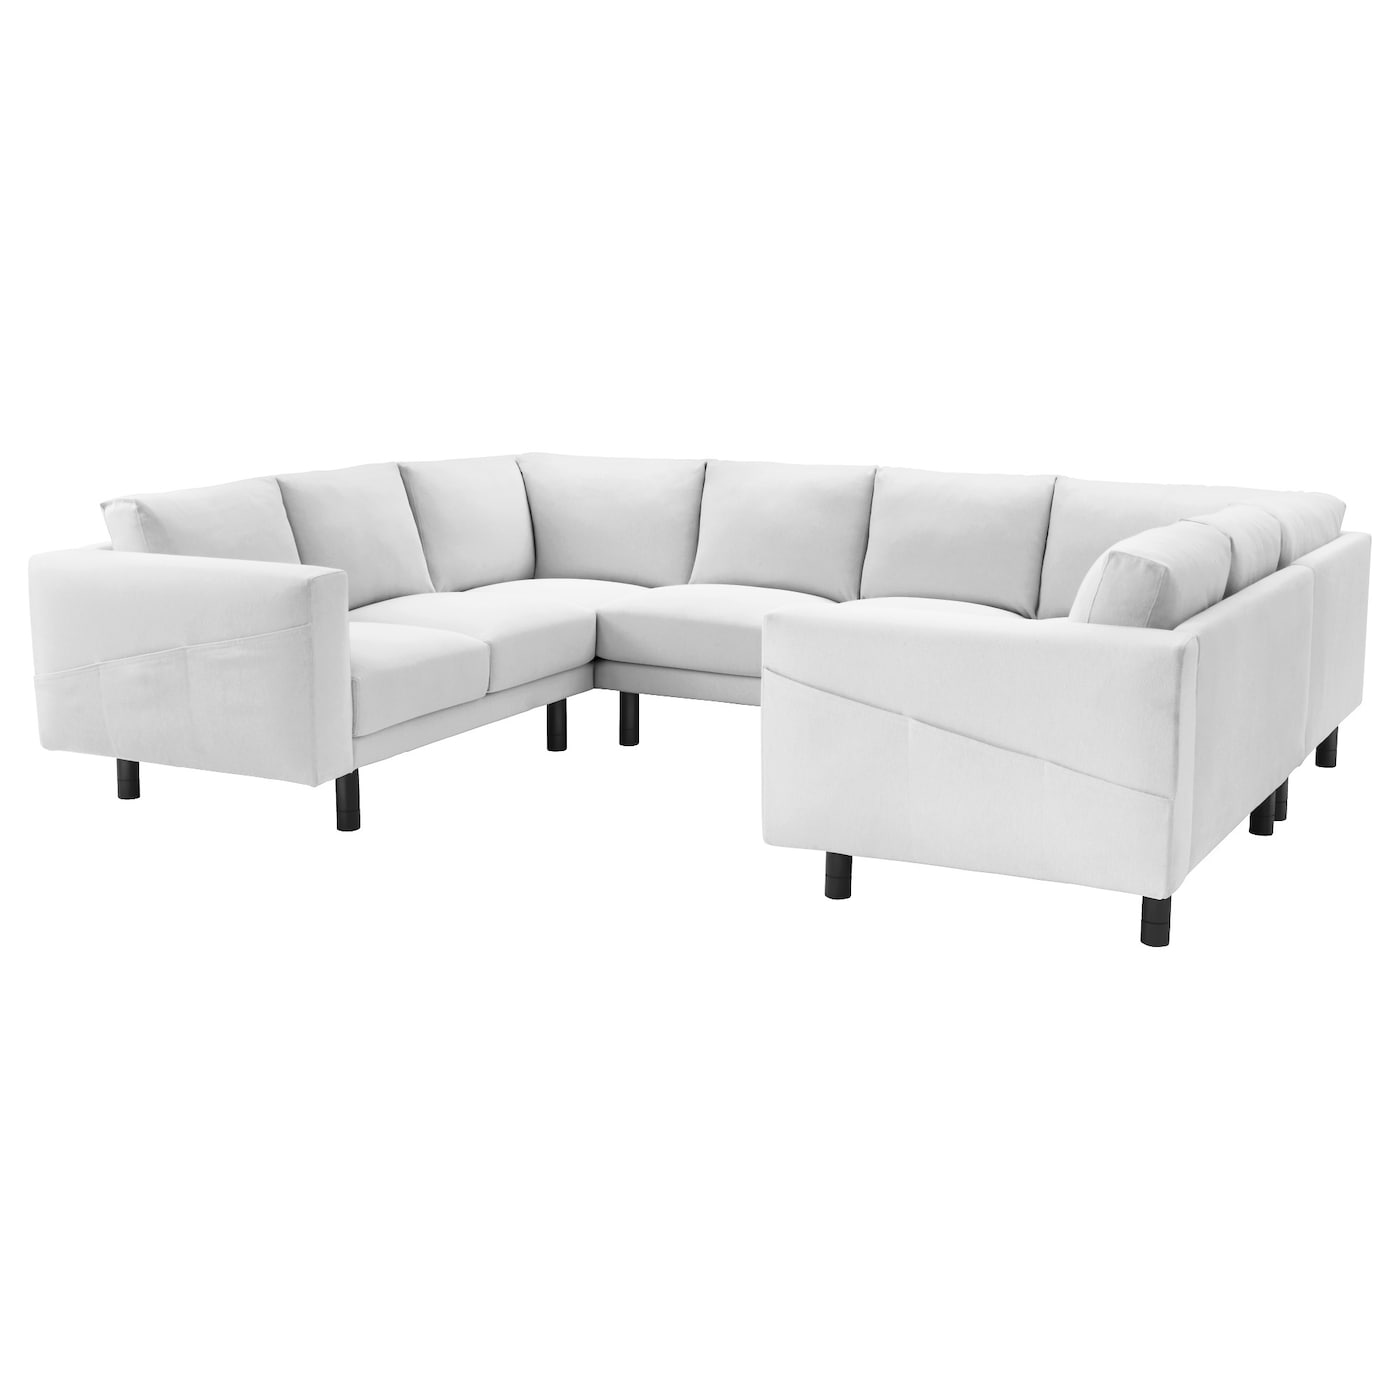 norsborg 8 seat sofa u shaped finnsta white grey ikea. Black Bedroom Furniture Sets. Home Design Ideas